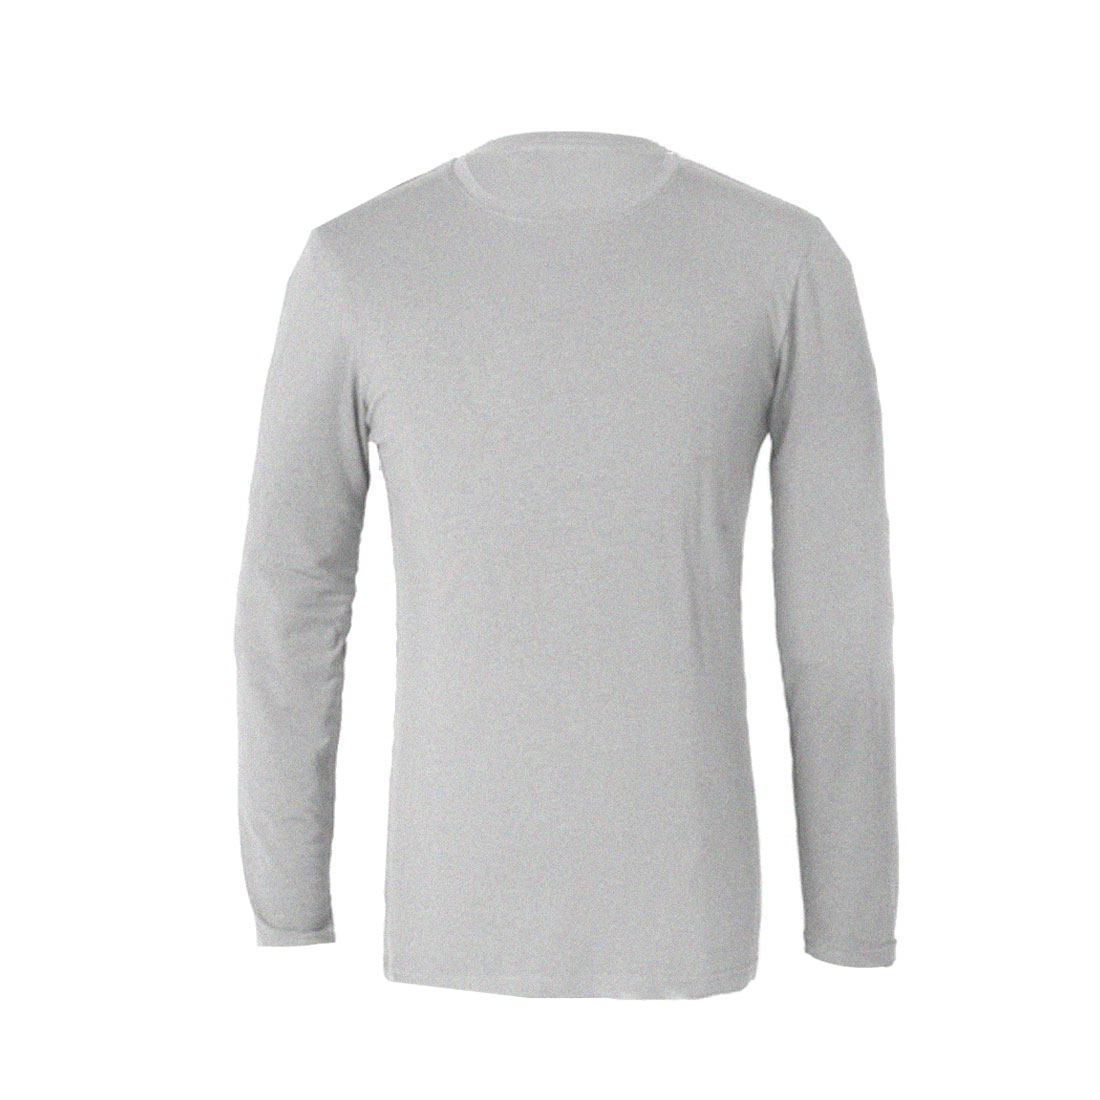 Mans Heather Gray Pure Color Round Neck Long Sleeve Casual Top Shirt S